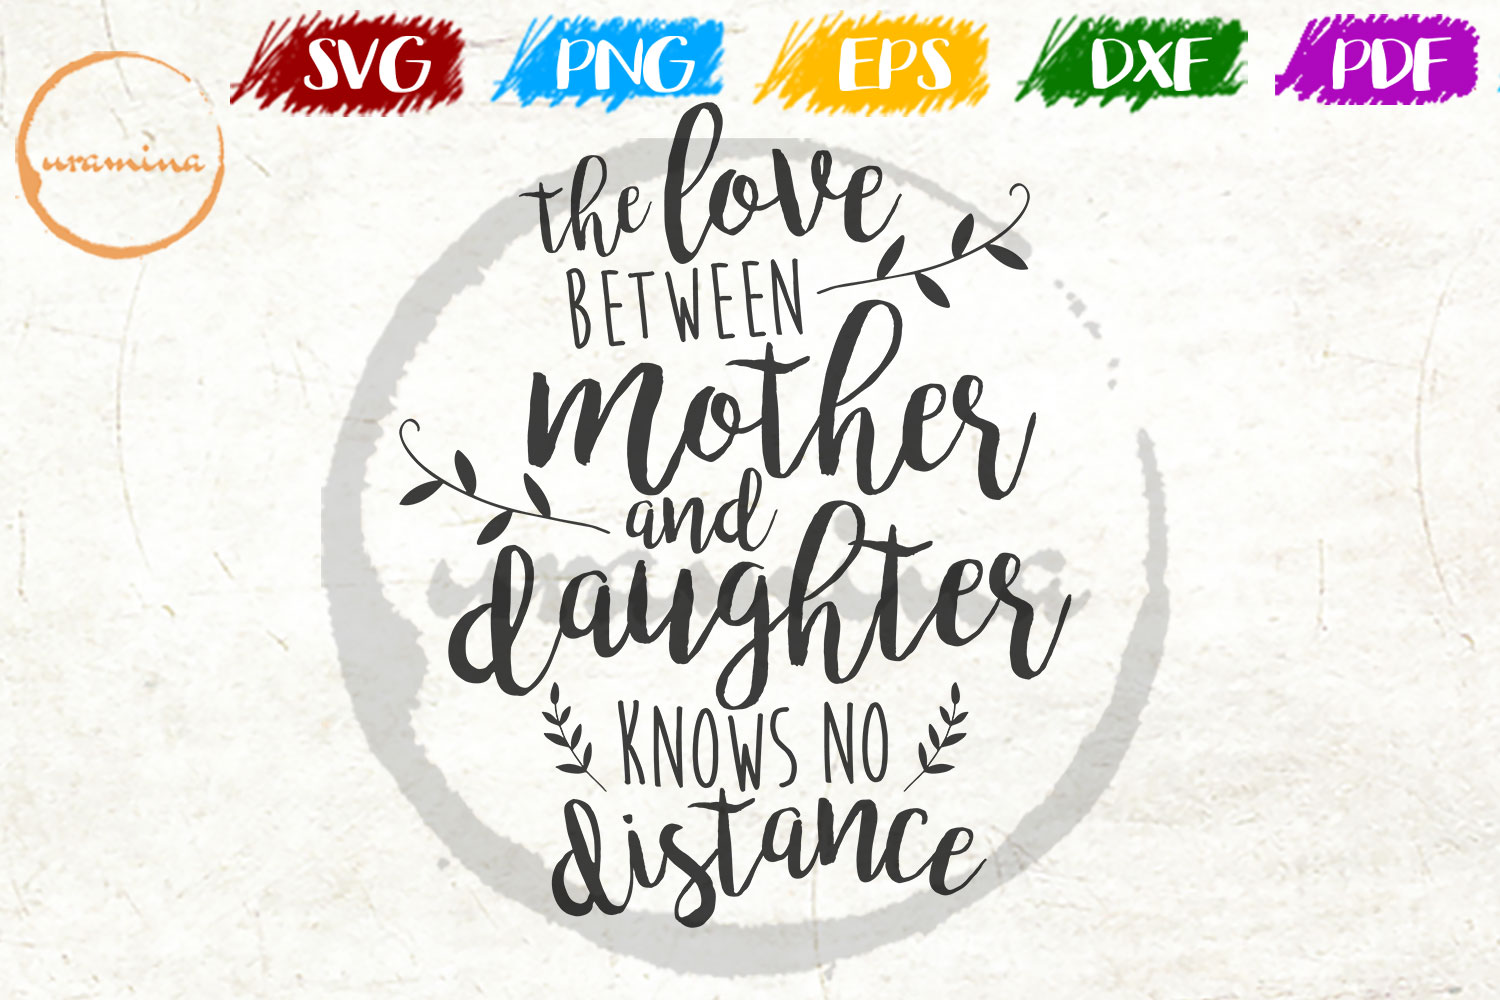 Download Free The Love Between A Mother And Daughter Graphic By Uramina for Cricut Explore, Silhouette and other cutting machines.